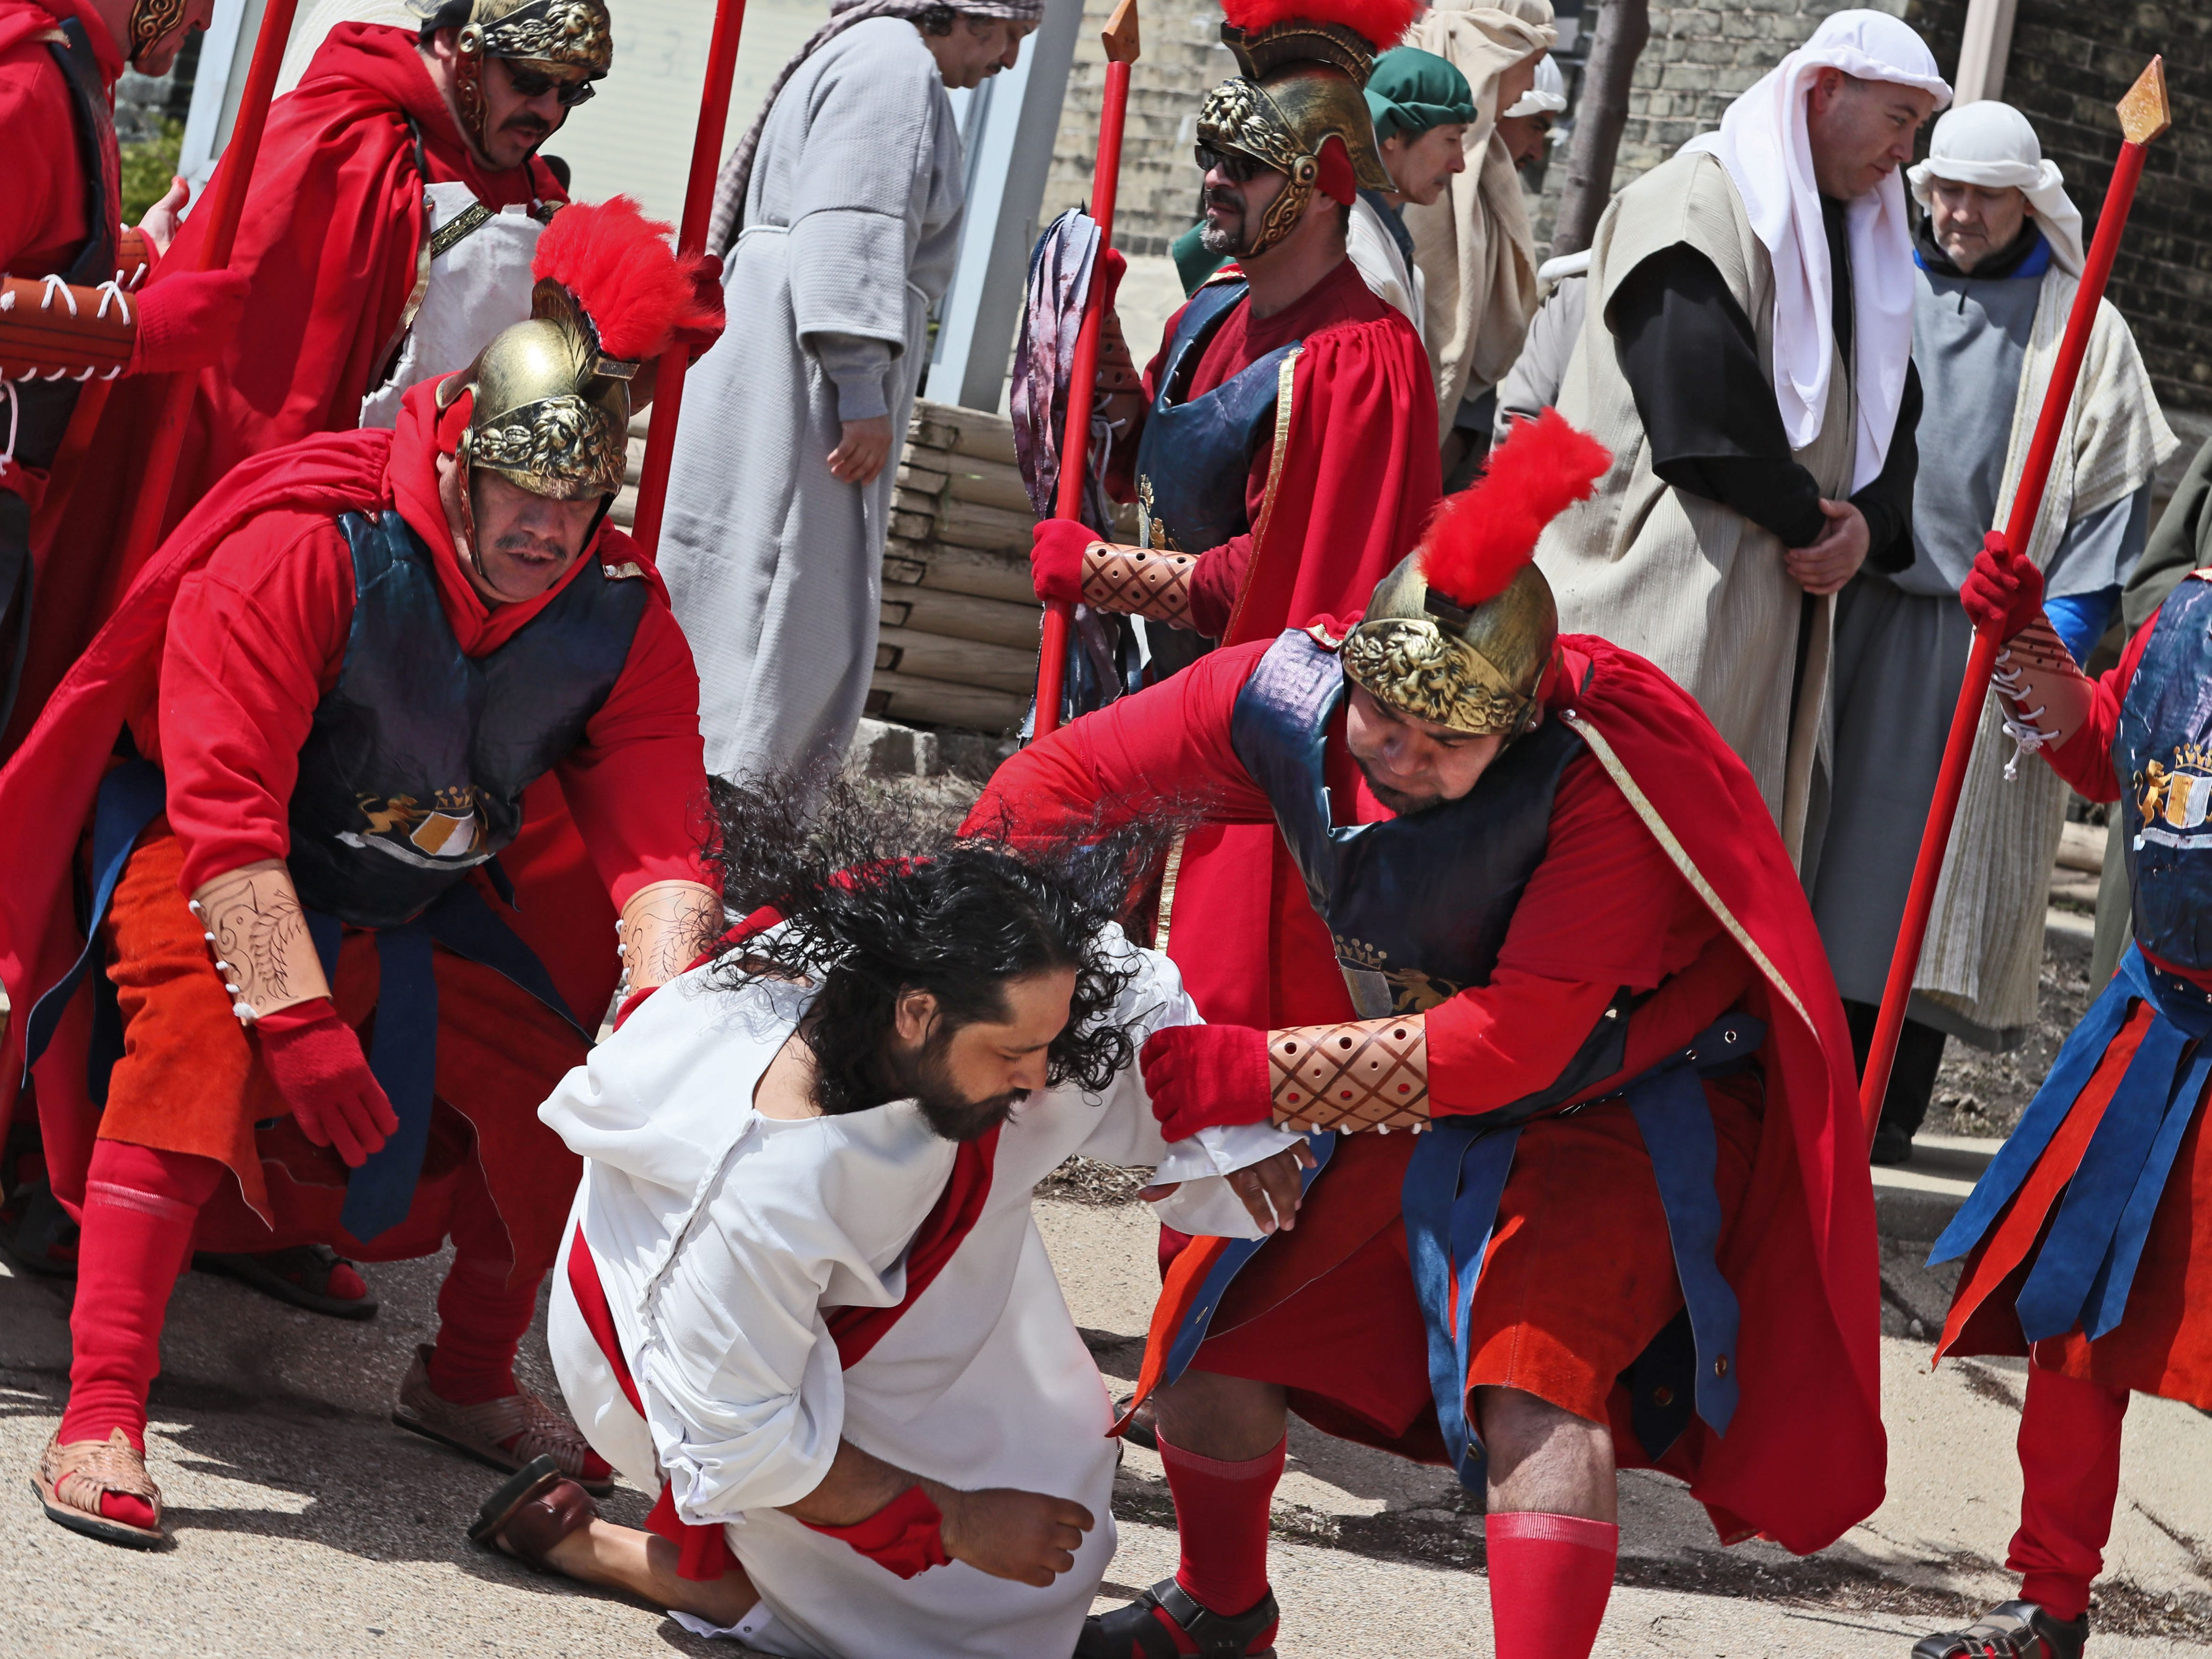 Roman soldiers throw Jesus to the ground after arresting him during a re-enactment of the Passion of Jesus Christ on Good Friday. Jesus is played by Pedro Rangel of Milwaukee.